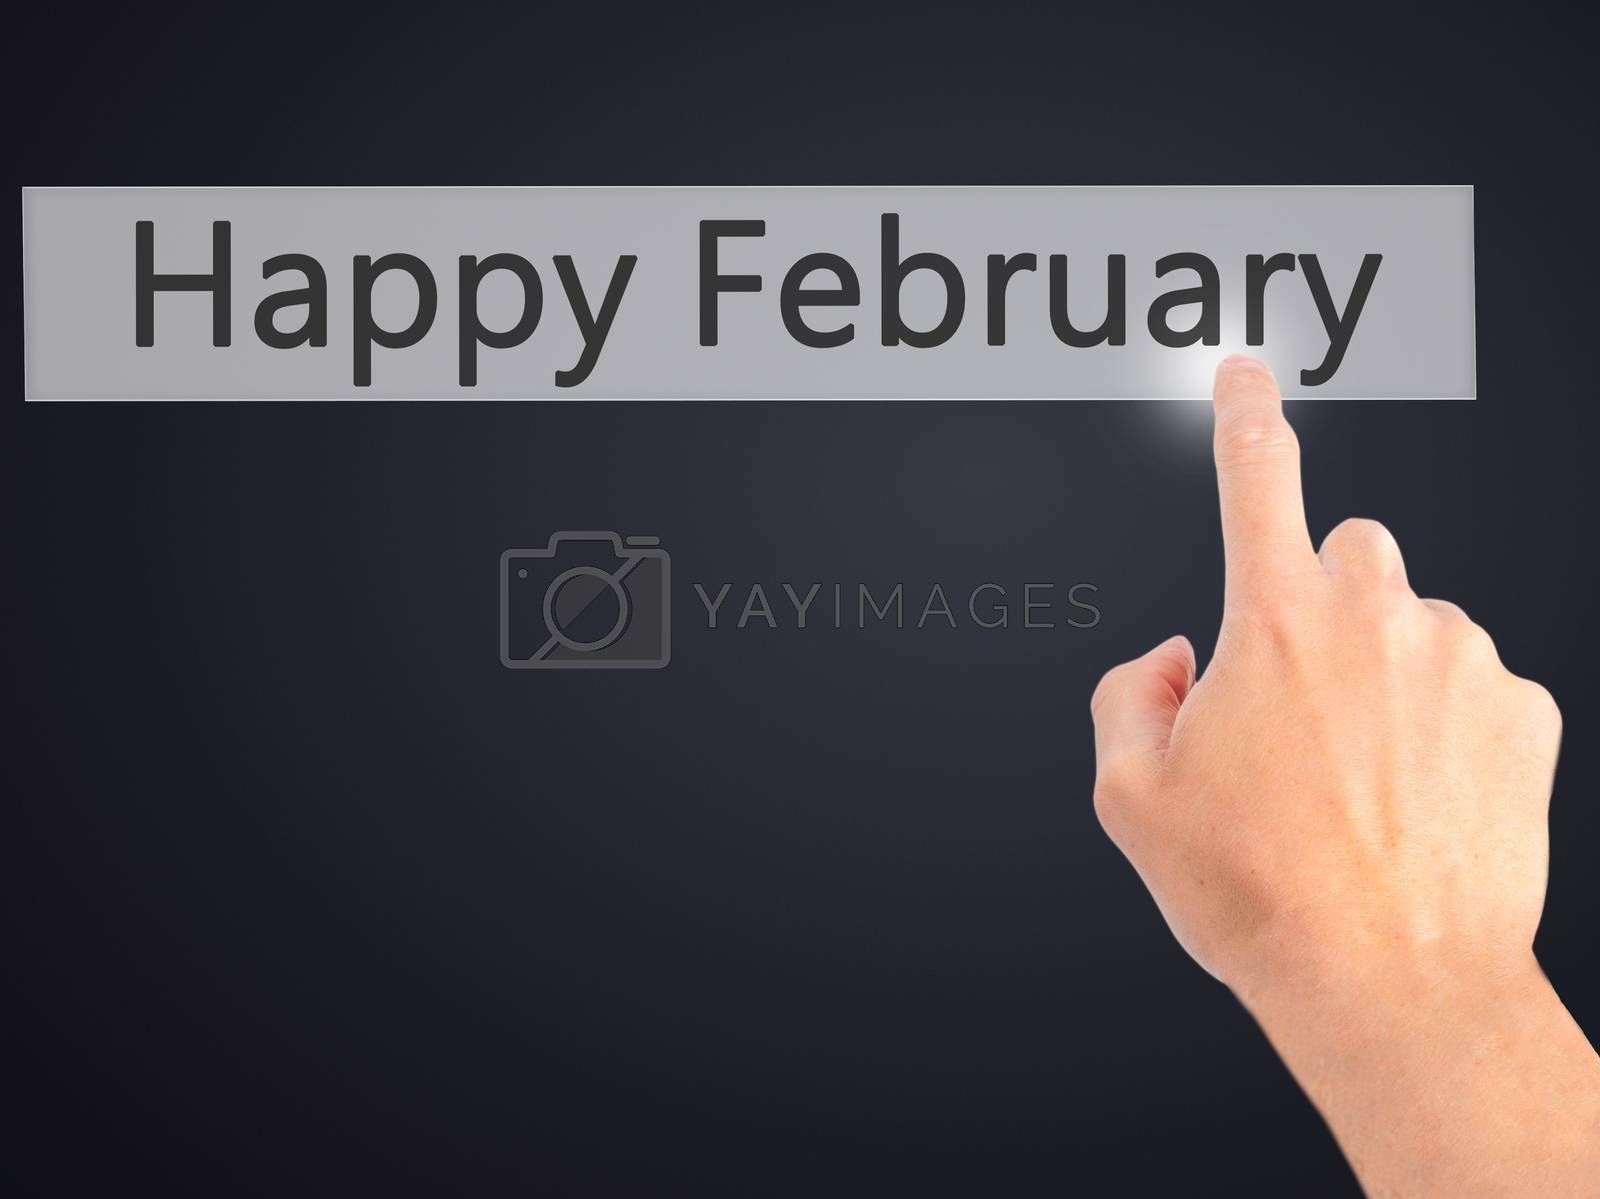 Happy February - Hand pressing a button on blurred background co by netsay.net